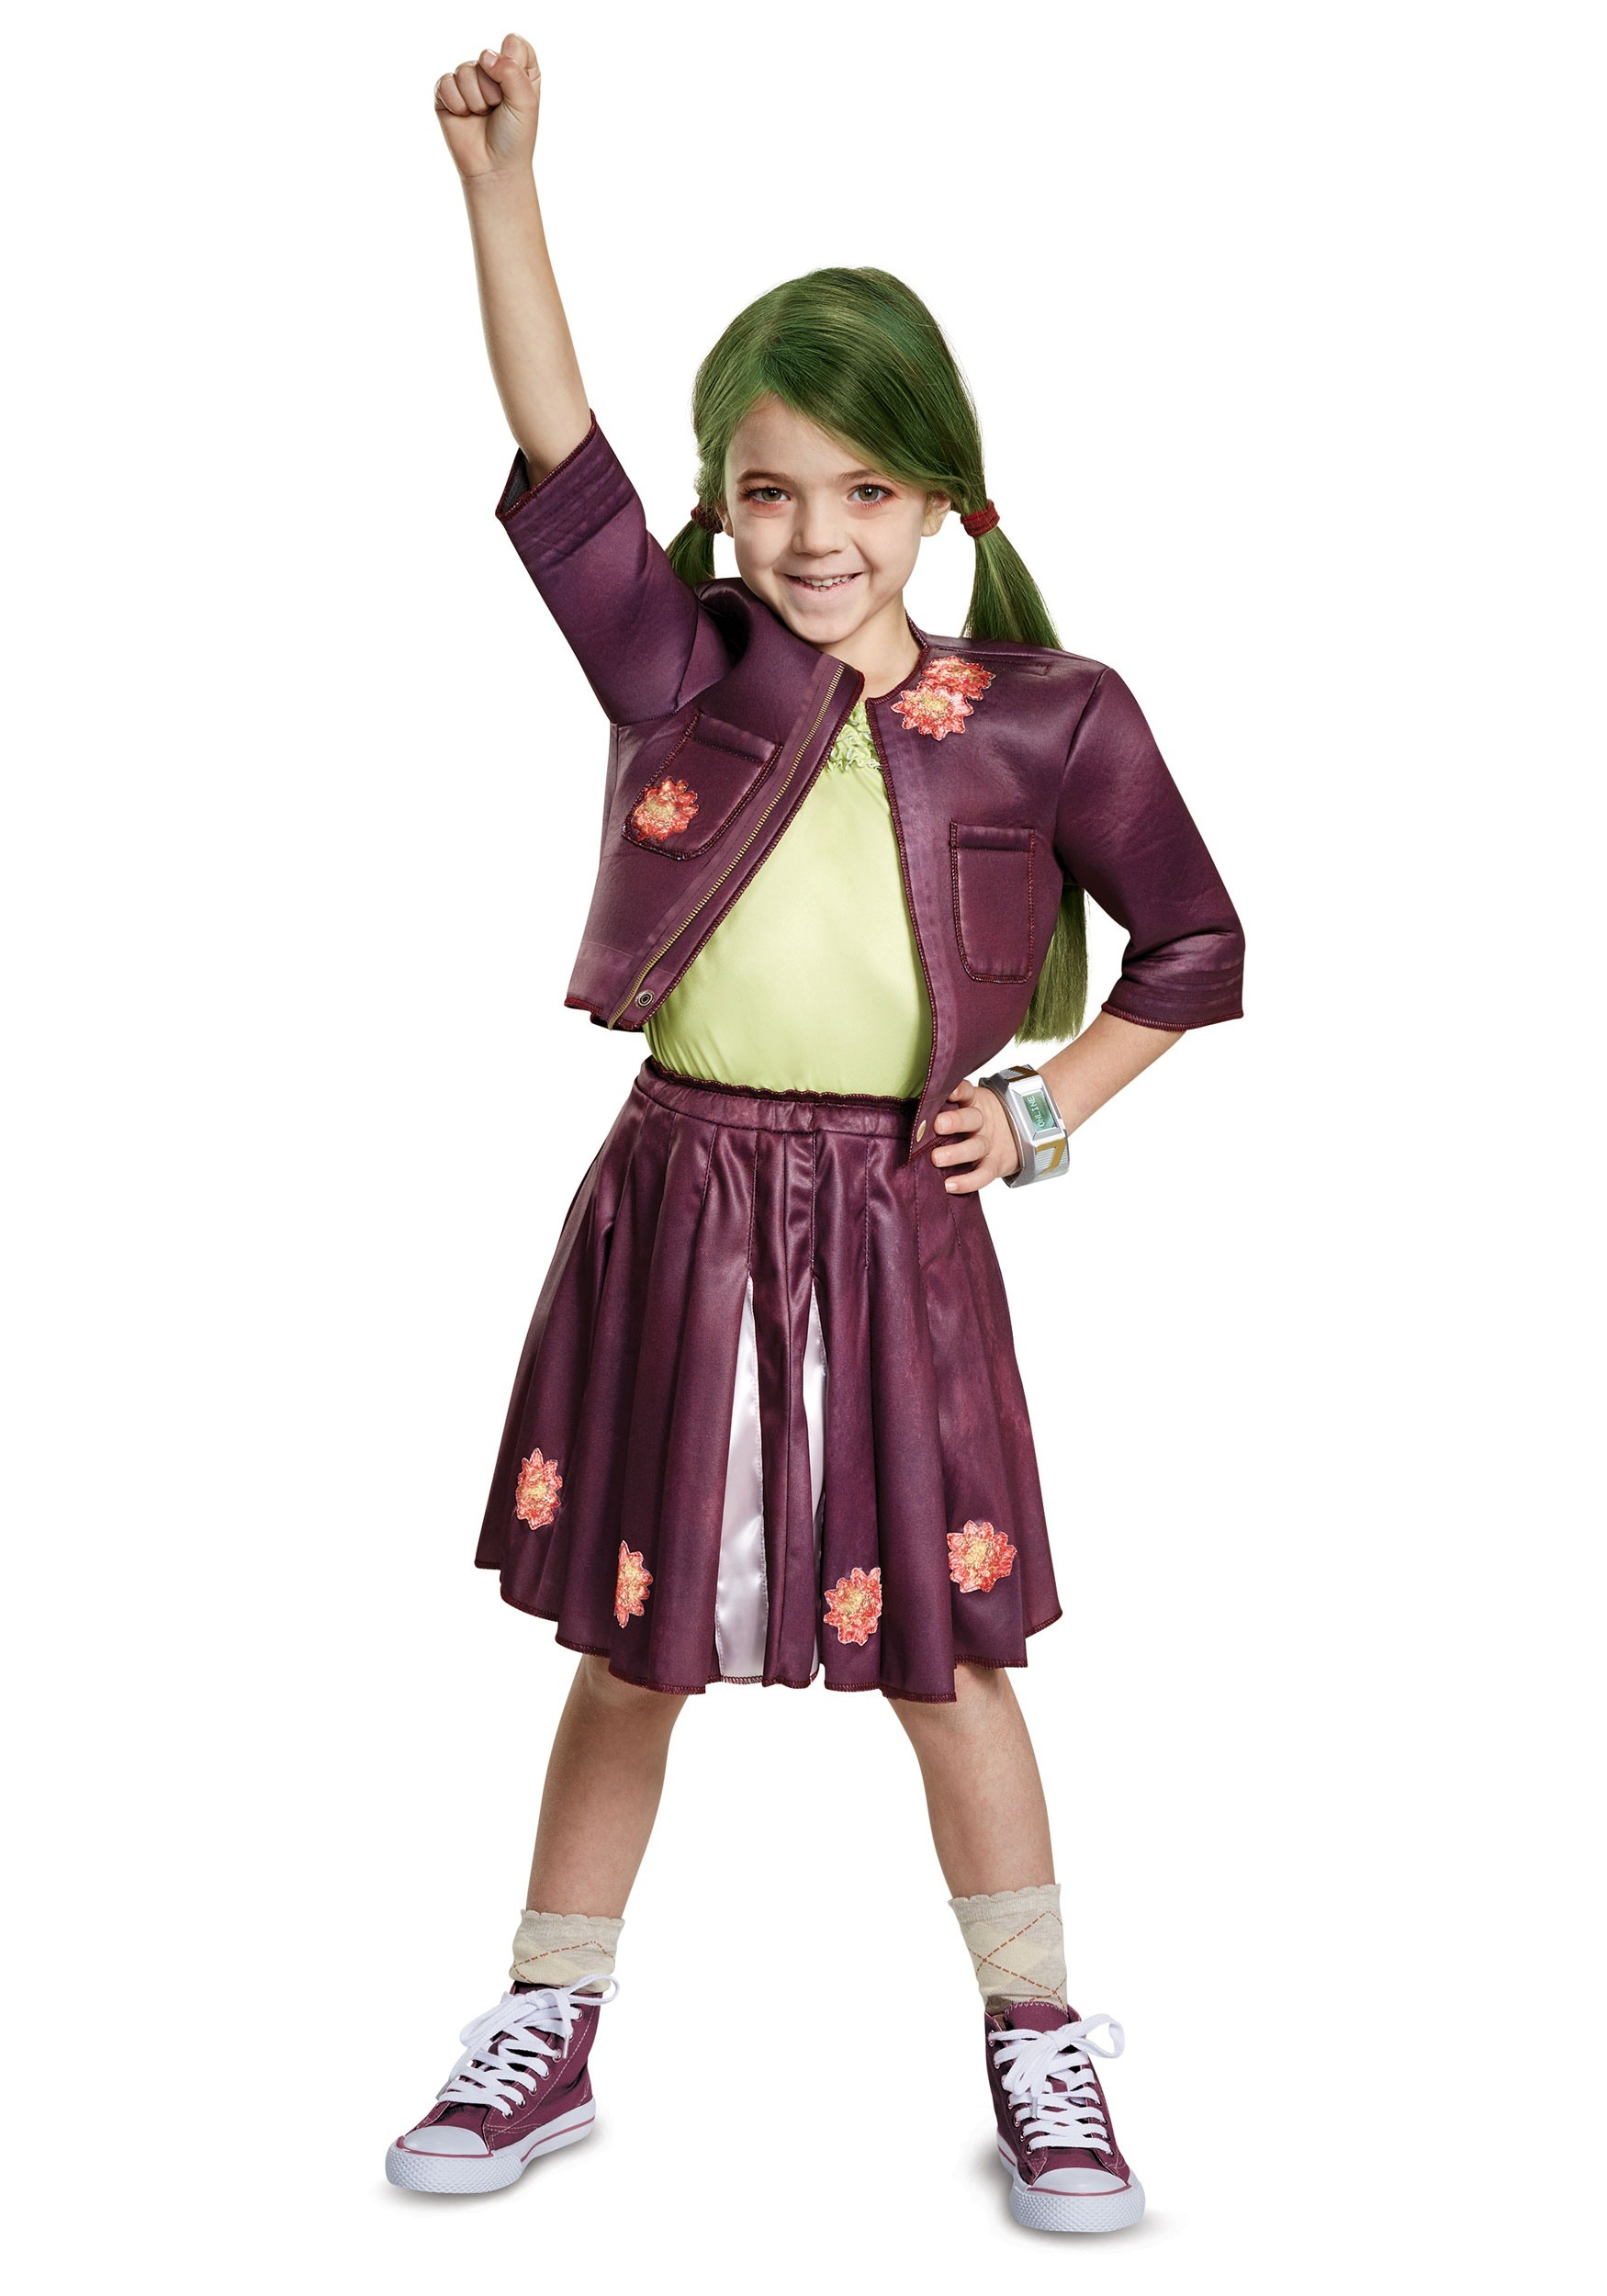 dbf29b02062 Disney Zombies Classic Zoey Costume for Girls